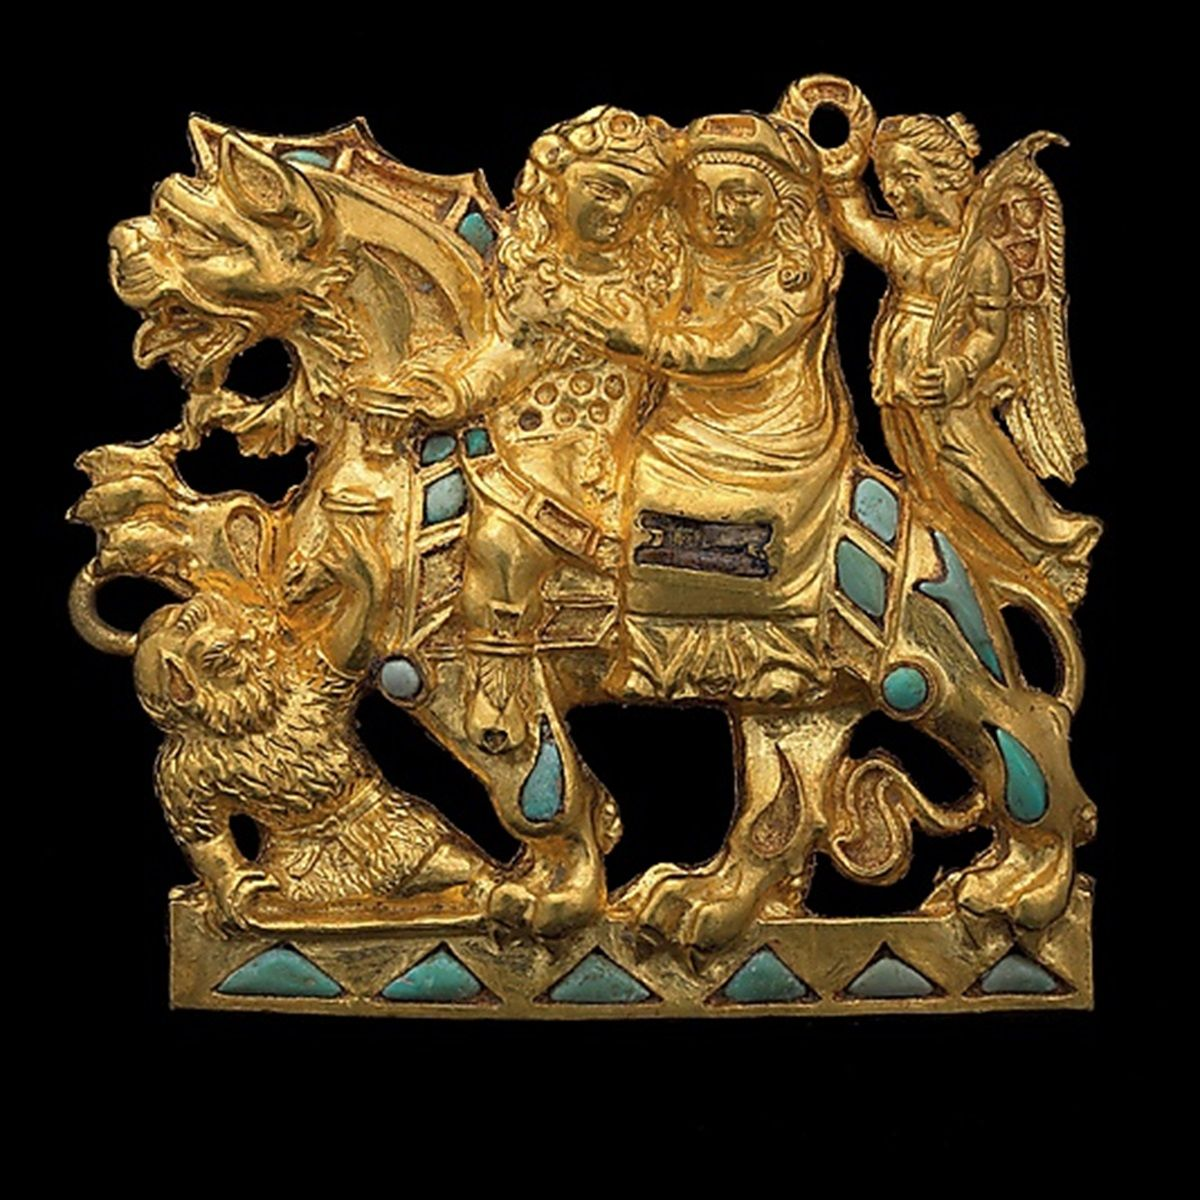 Tragedy of the Golden Hoard of Bactria